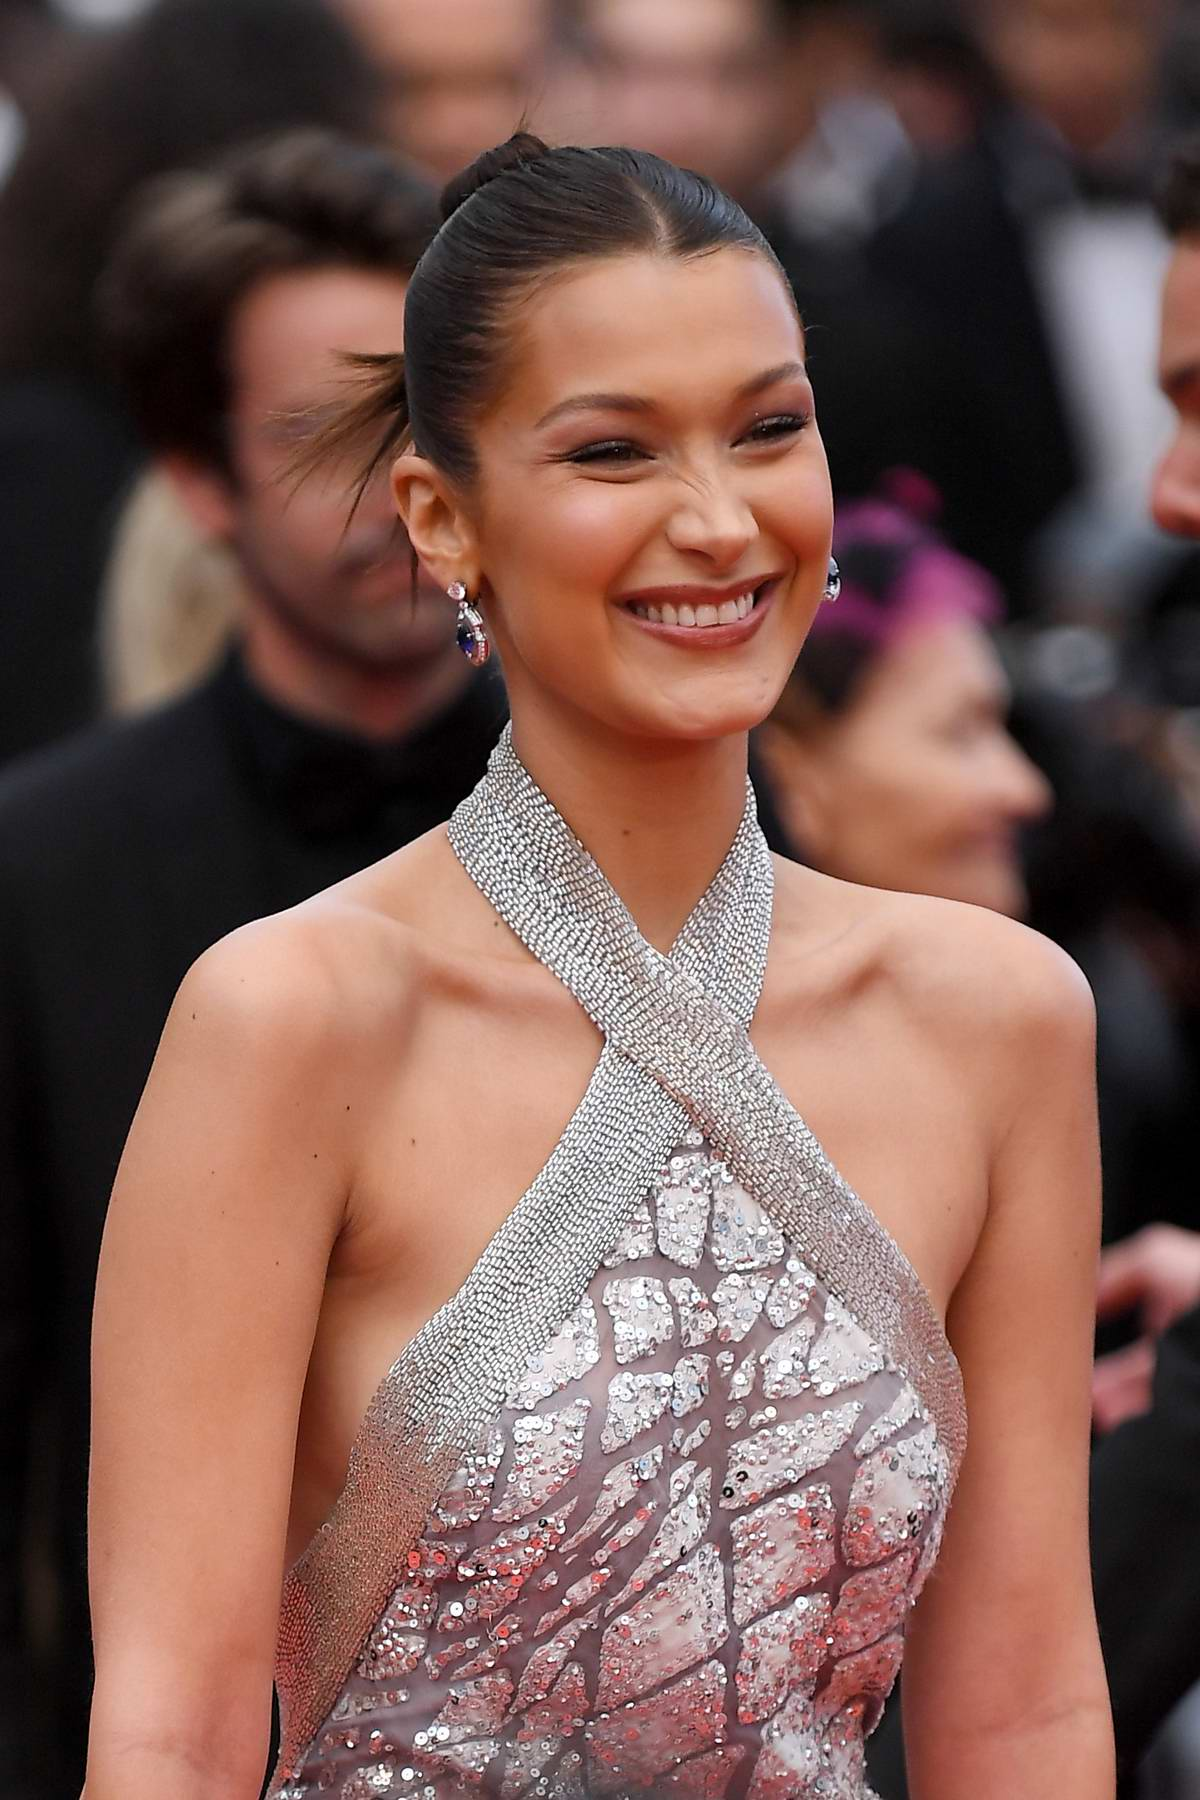 Bella Hadid attends the 'BlacKkKlansman' premiere during 71st Cannes Film Festival in Cannes, France